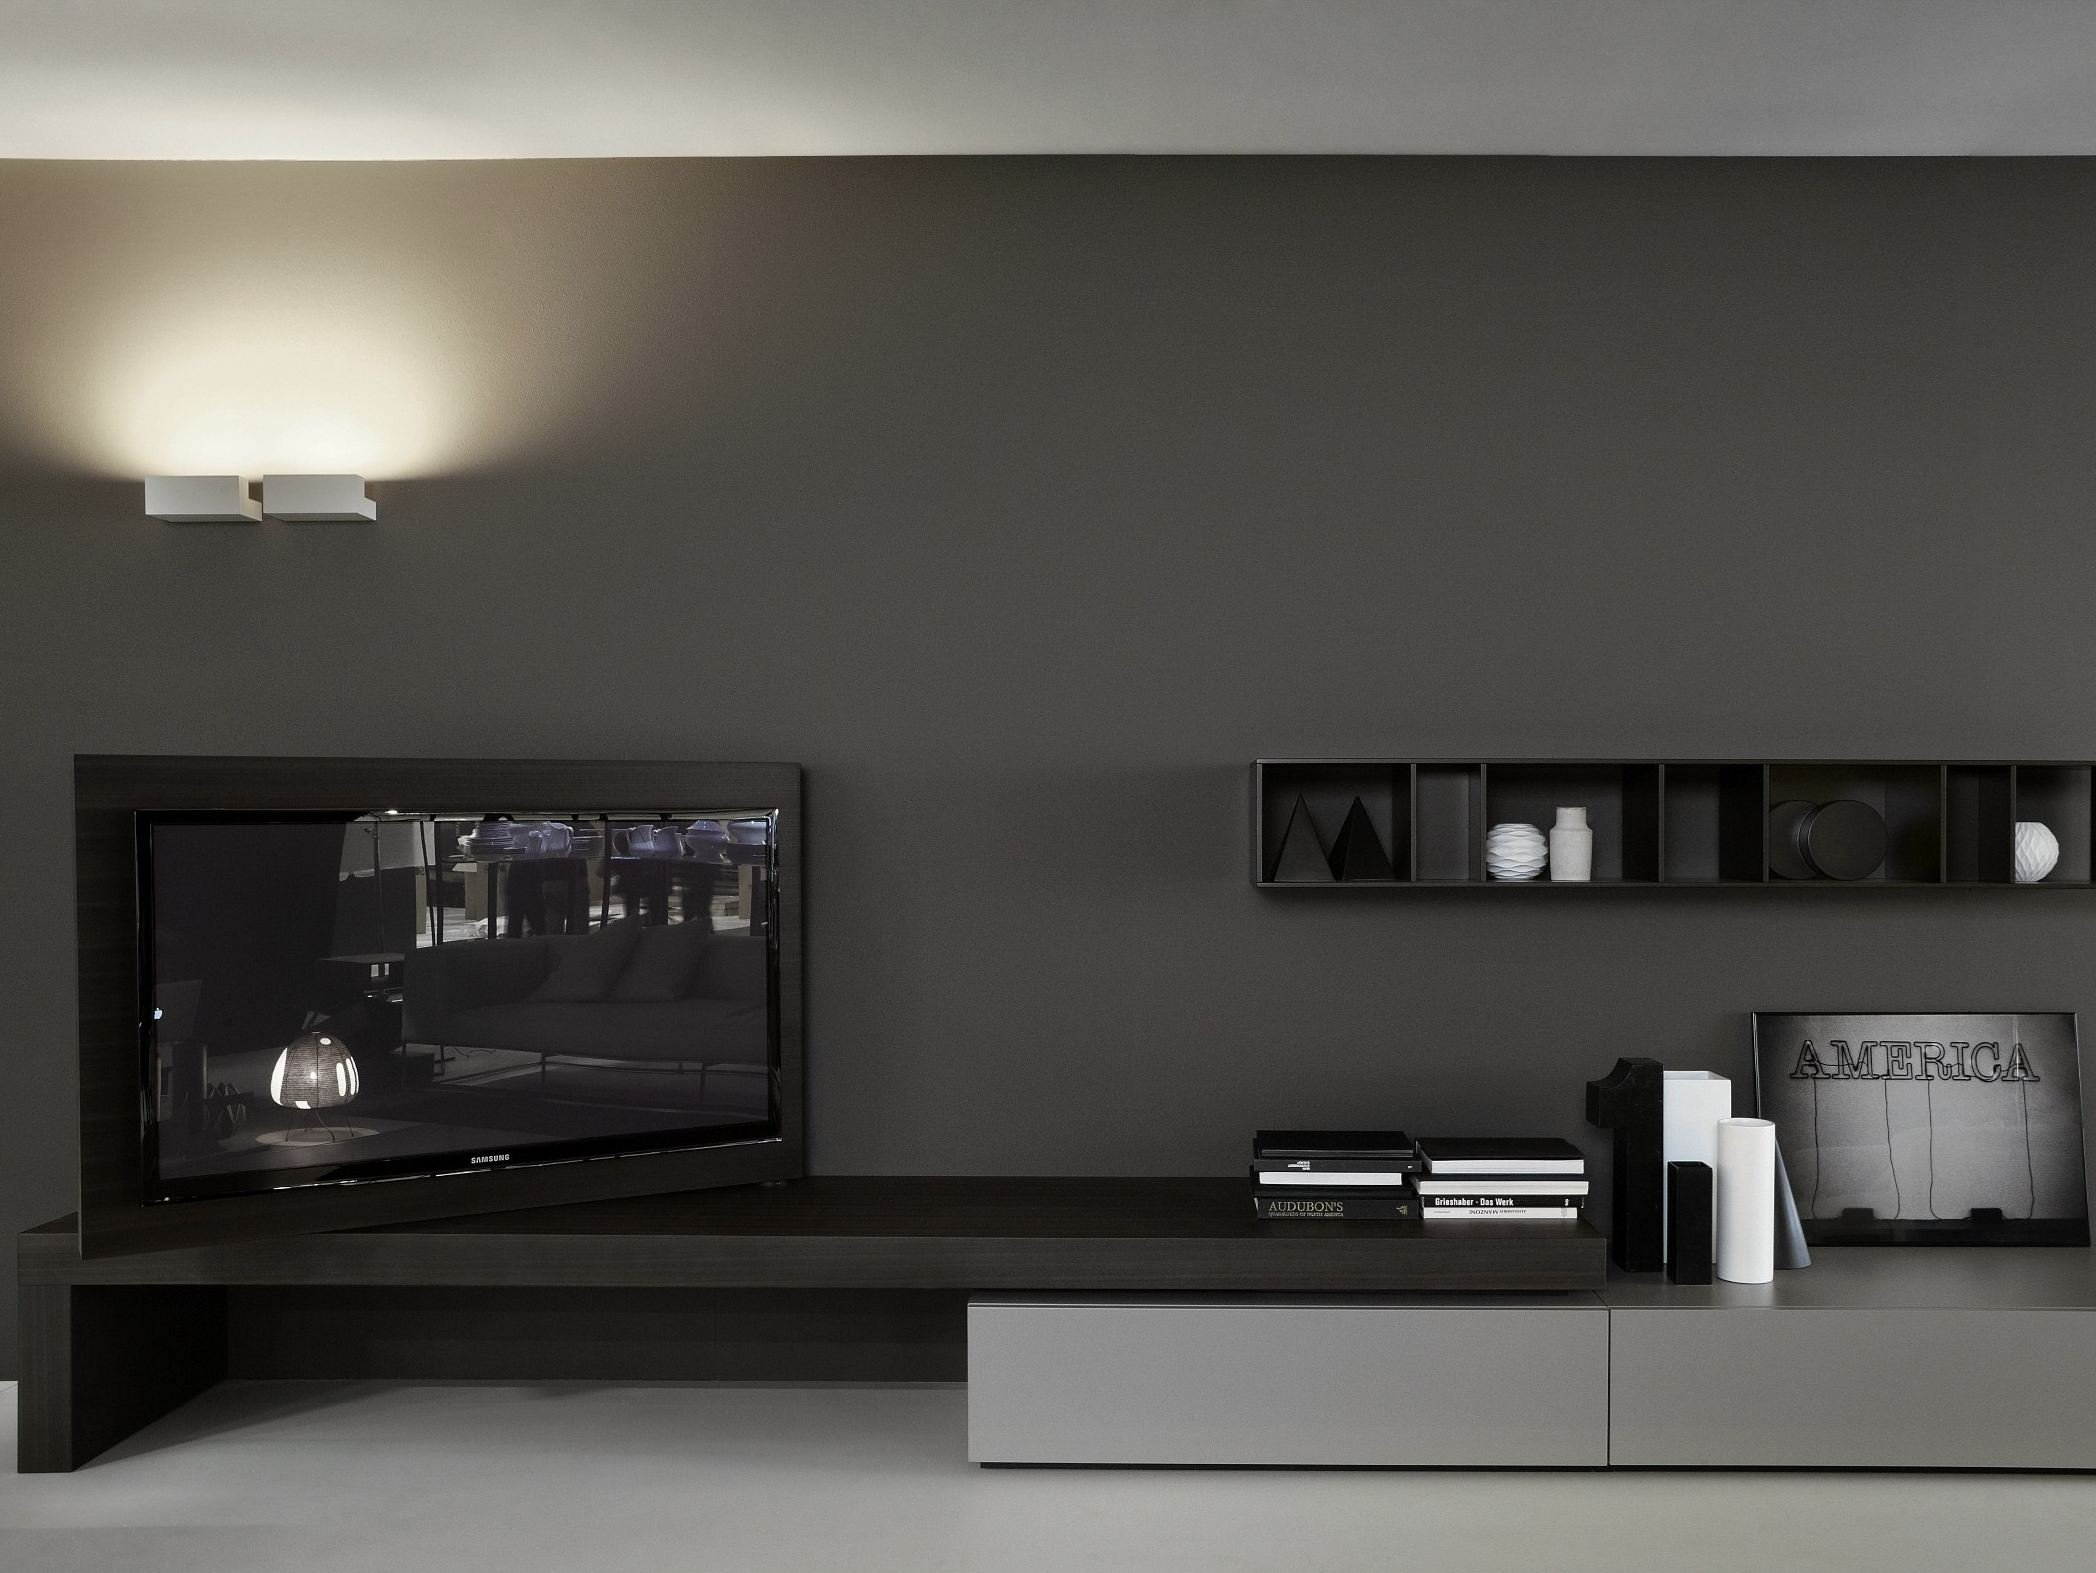 Meuble Tv Tres Moderne : Meuble Tv Bas Modern Flag By Porro Design Piero Lissoni